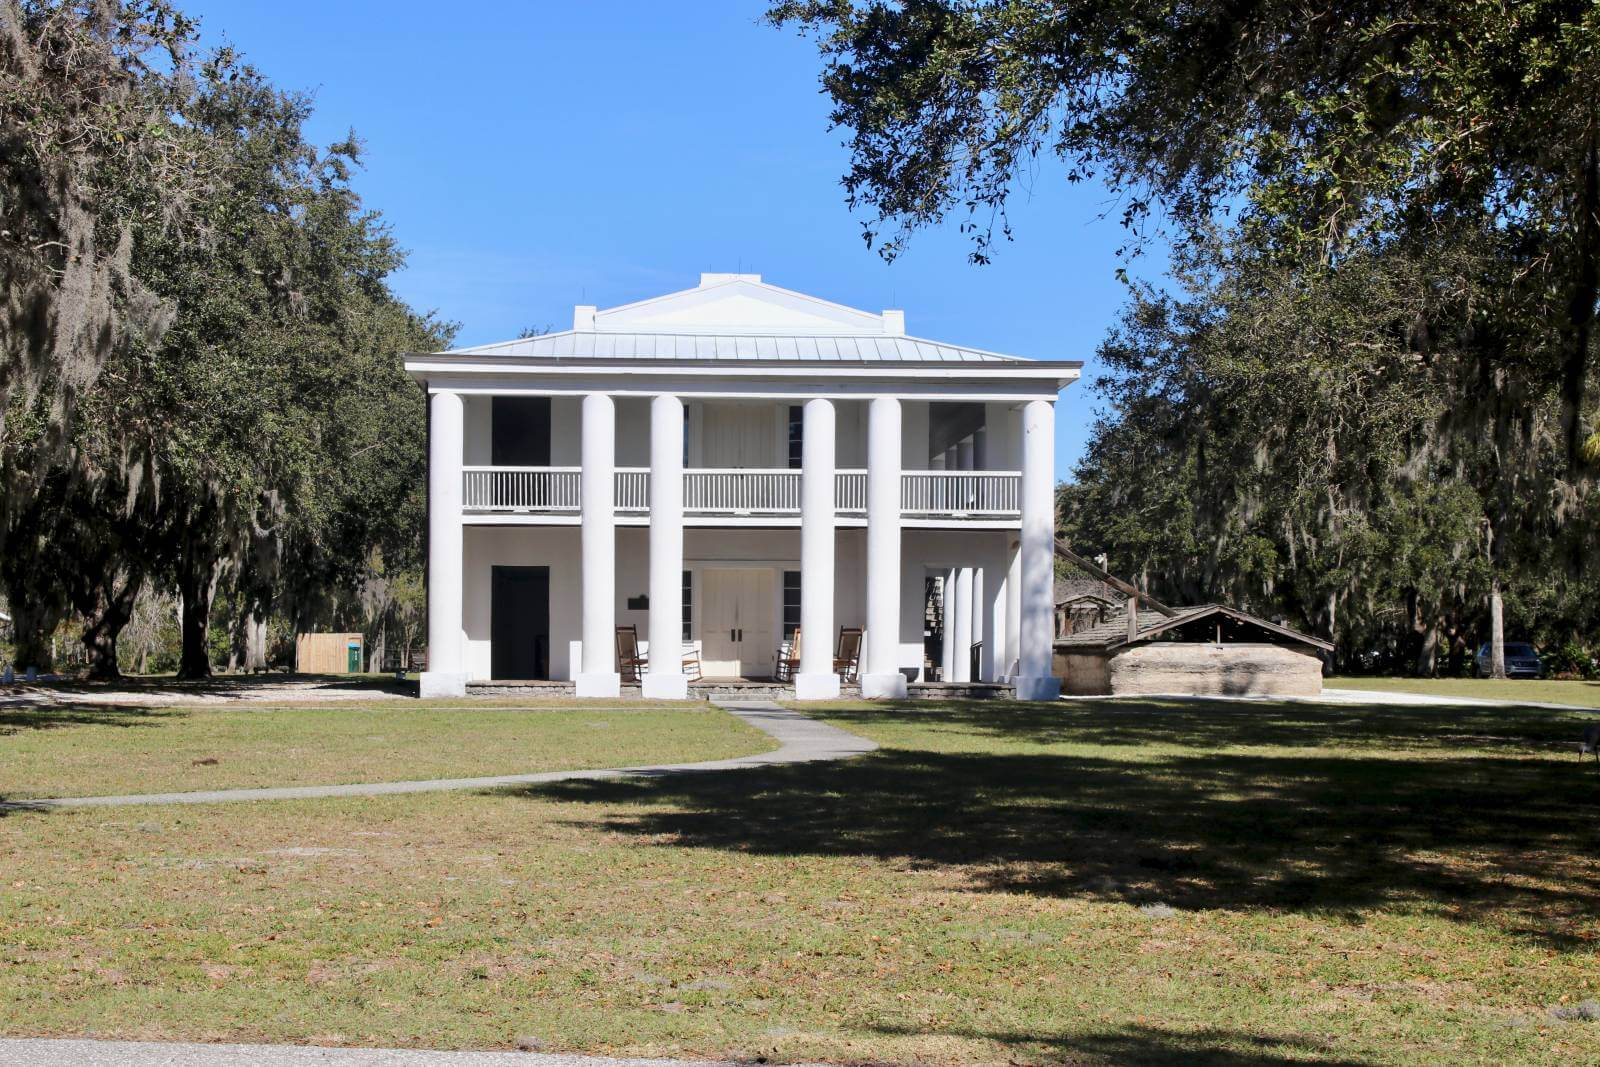 Visit one of 5 top historic homes in Southwest Florida. The Gamble Plantation in Ellenton is an easy day trip from Sarasota, Florida. The antebellum mansion is the only surviving plantation home in South Florida and was once the headquarters of an extensive sugar plantation. Must Do Visitor Guides | MustDo.com. Photo by Nita Ettinger